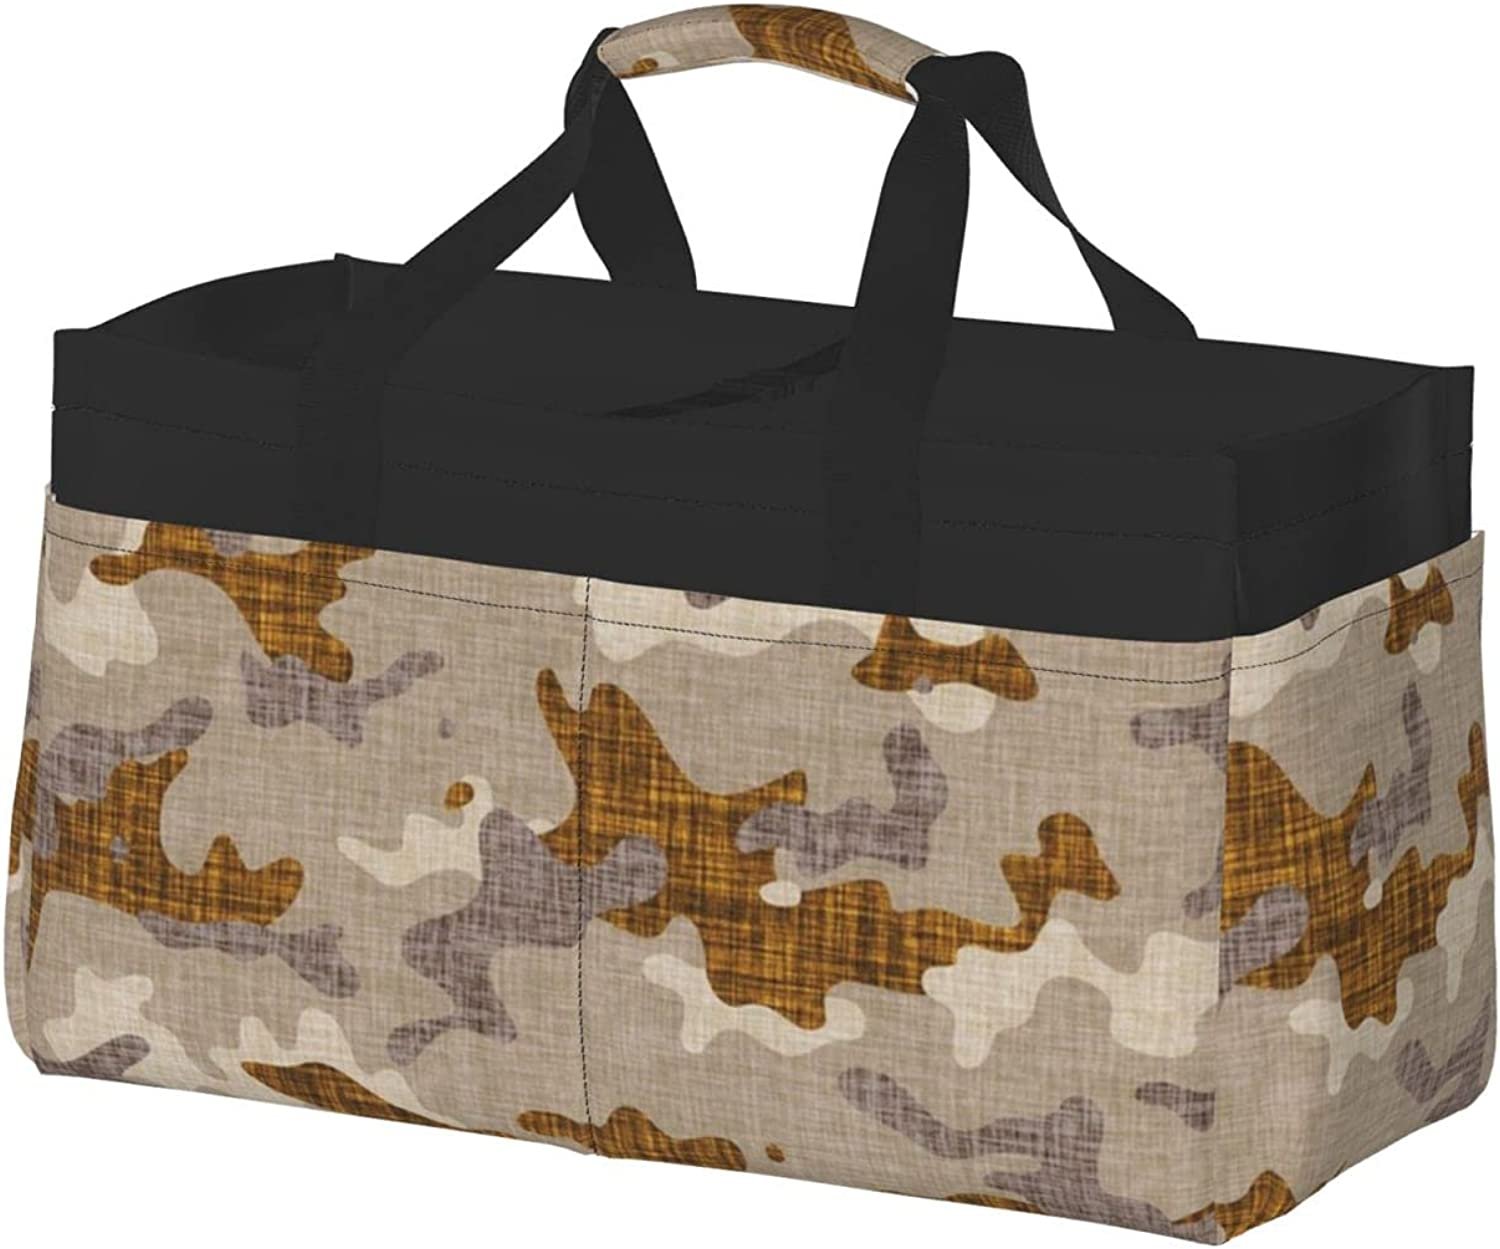 Extra Large All items in the store Utility Tote Bag Sale special price - Basket Canvas Beach Oversized Reu